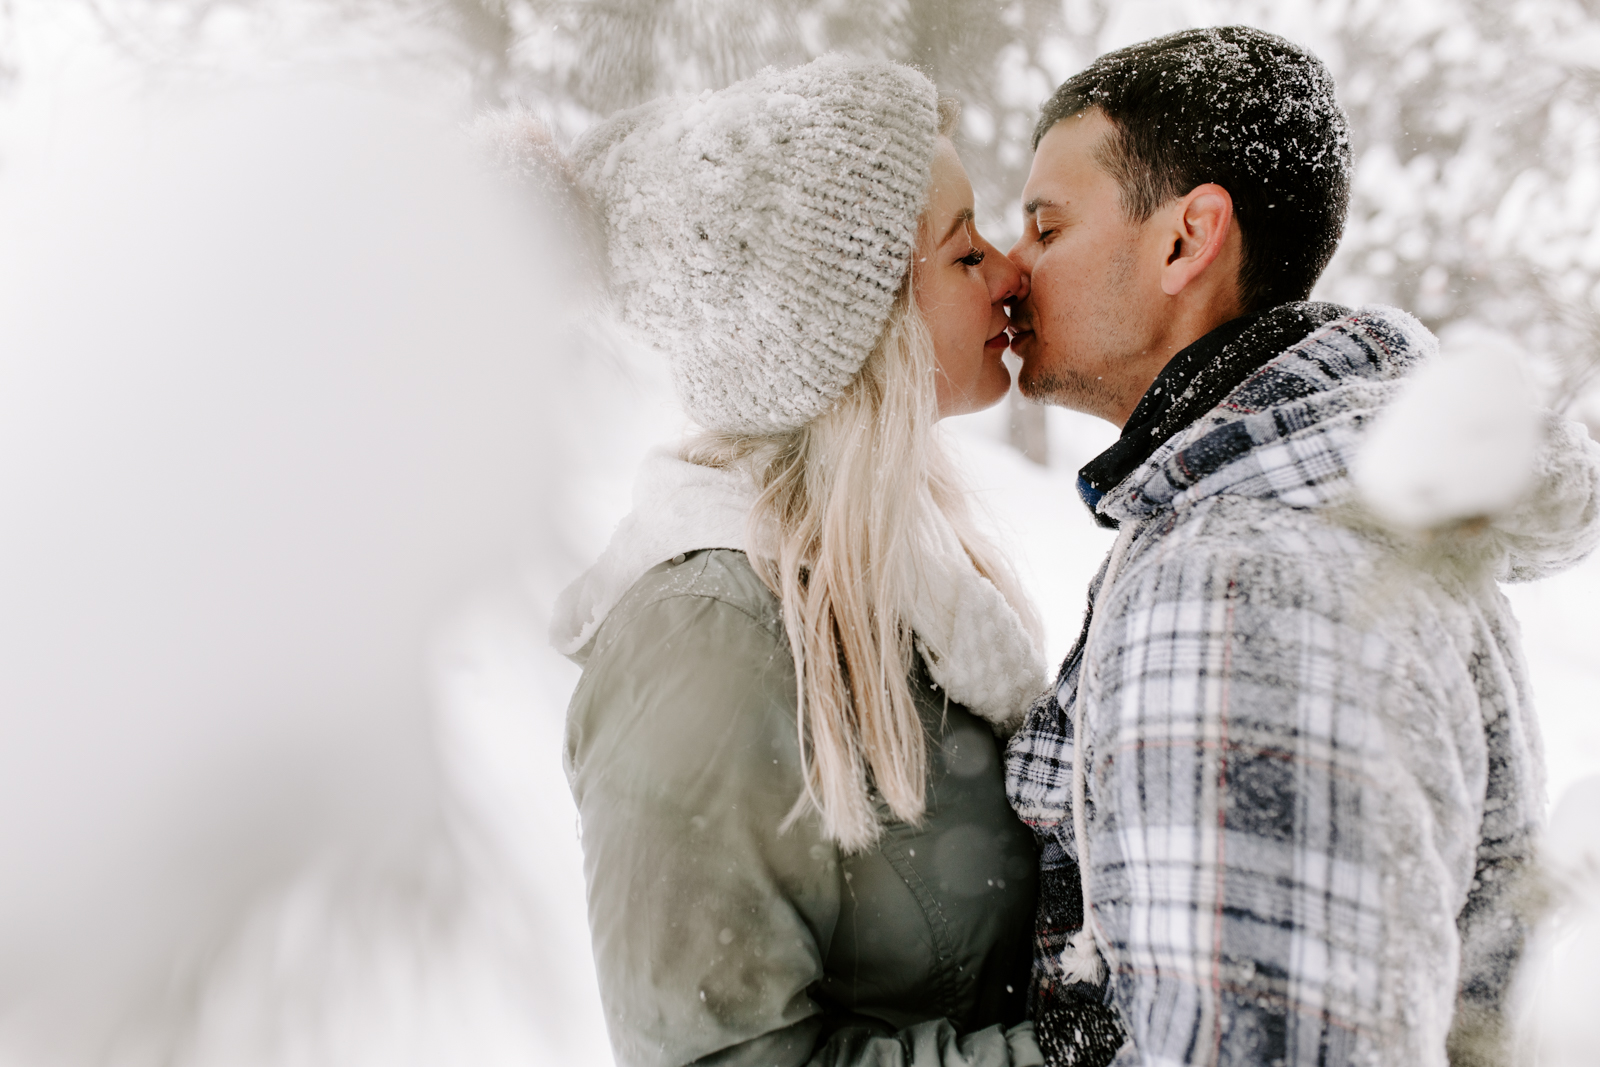 Vanessa & Danny Snow Rocky Mountain National Park Engagement Elopement Photography Photographer-67.jpg